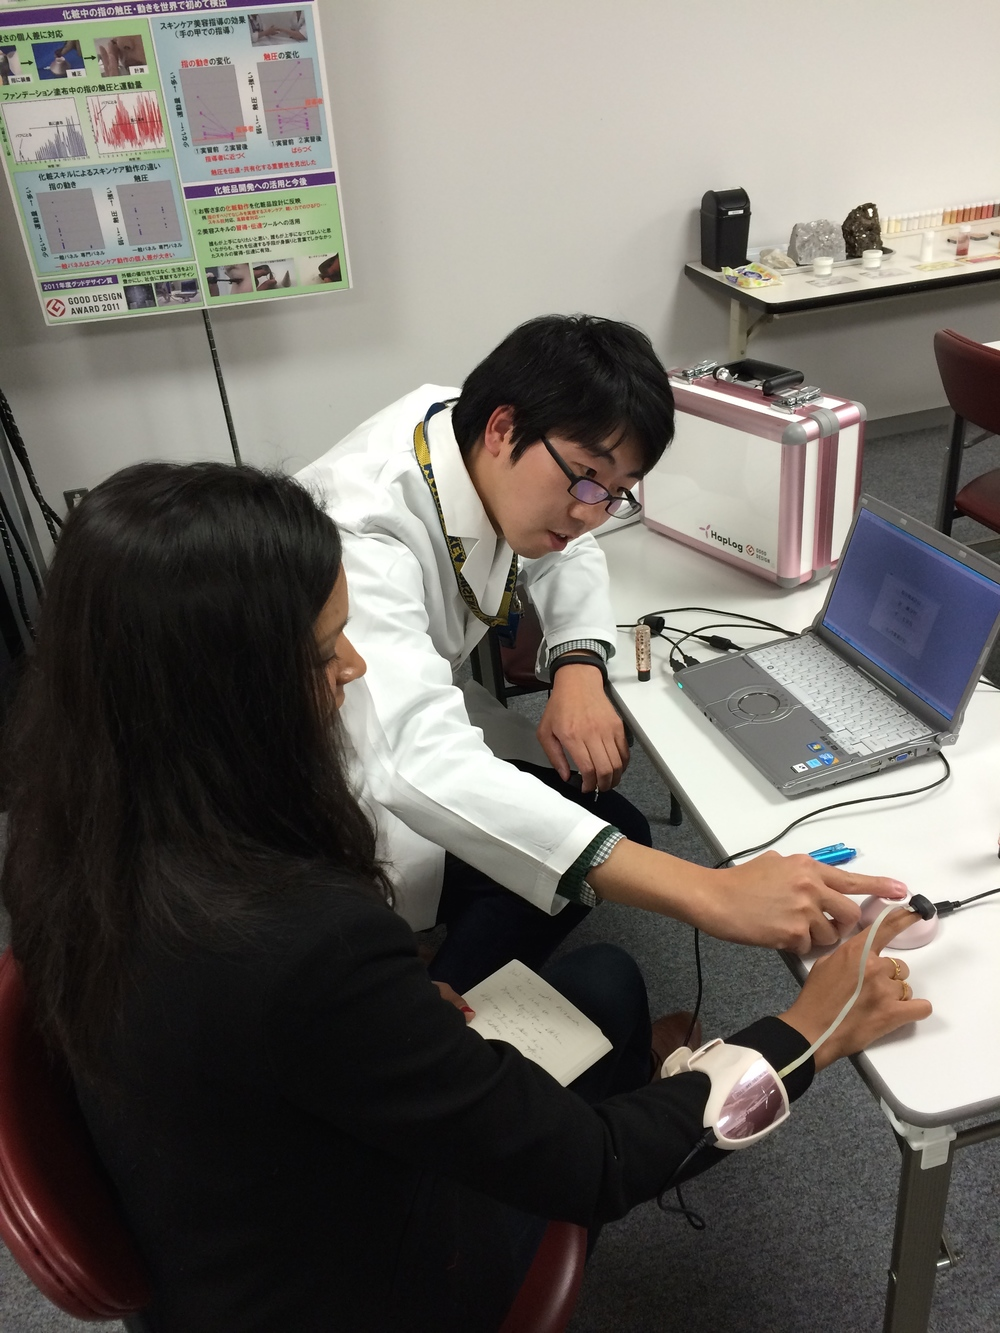 Chatting with Naoki Saito, a research scientist with the Sensory and Emotional Research Group at Shiseido, about the HapLog, which tests skin deformation during product application to give scientists a measure of how users sense its texture